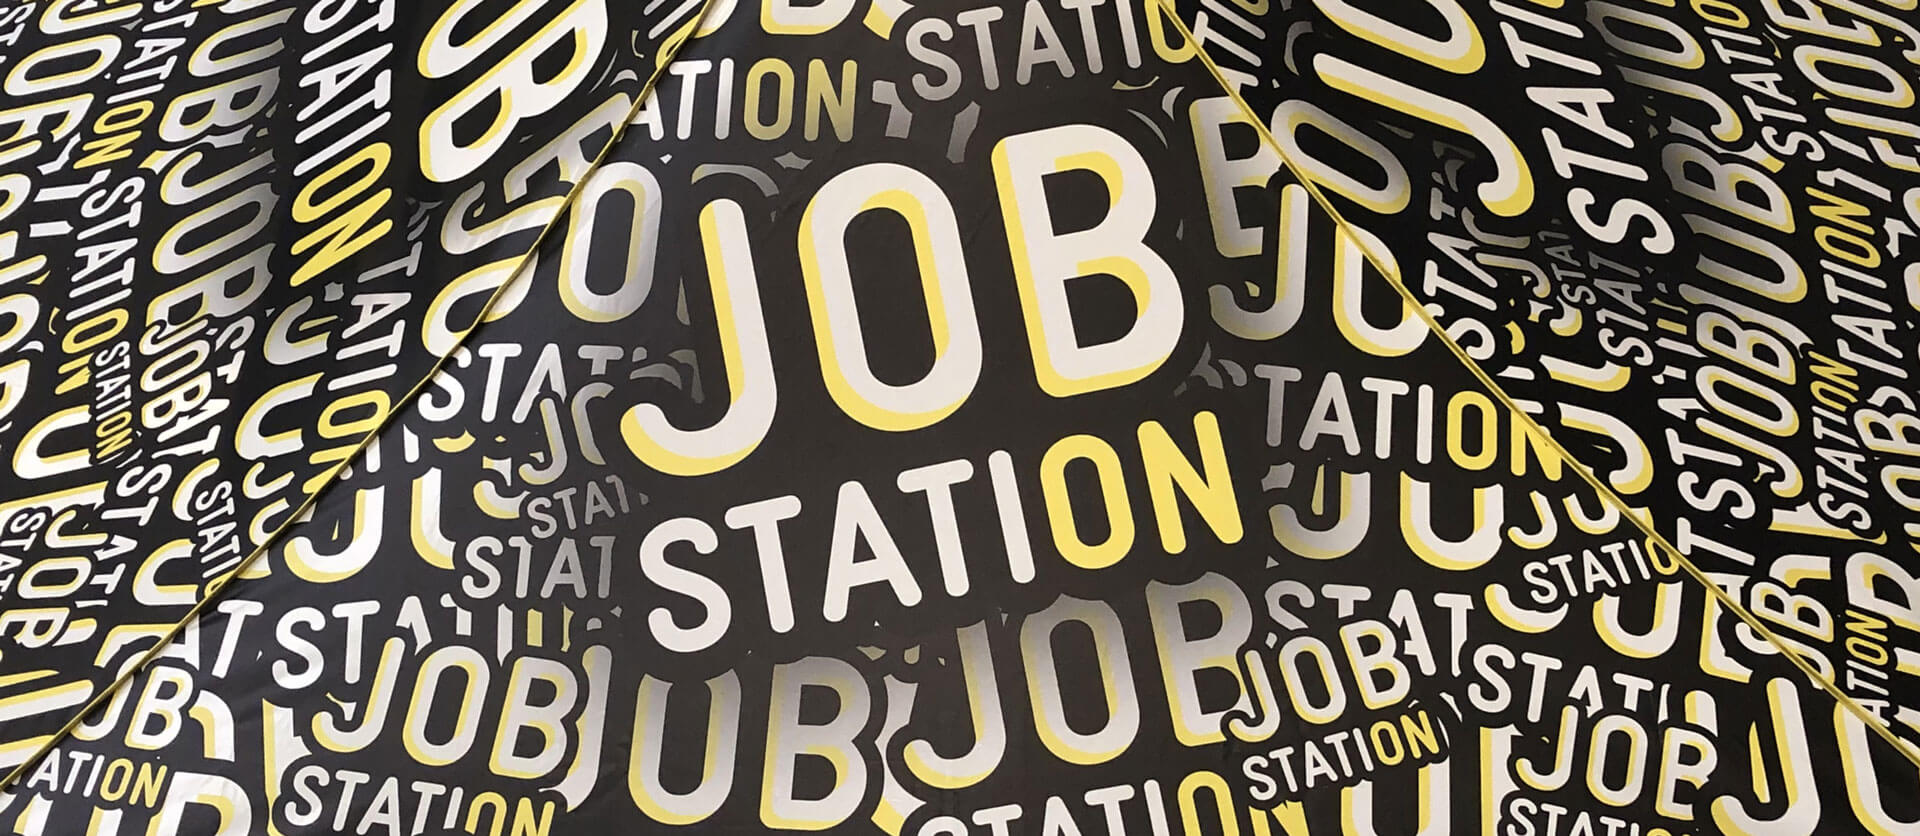 JobStation logo